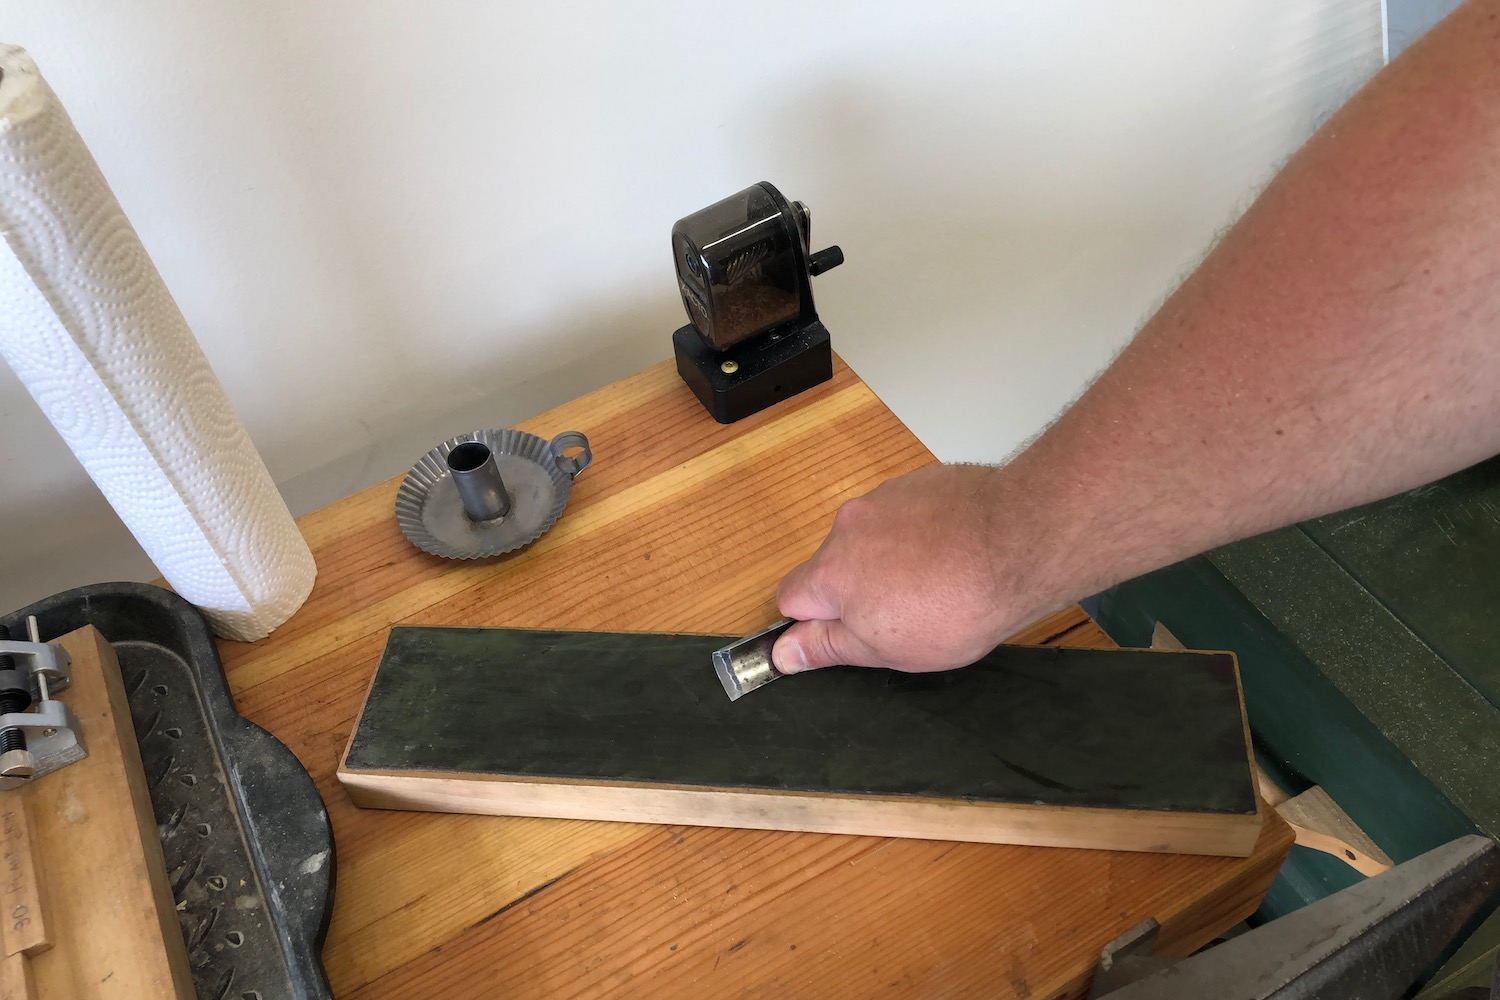 Stropping a gouge